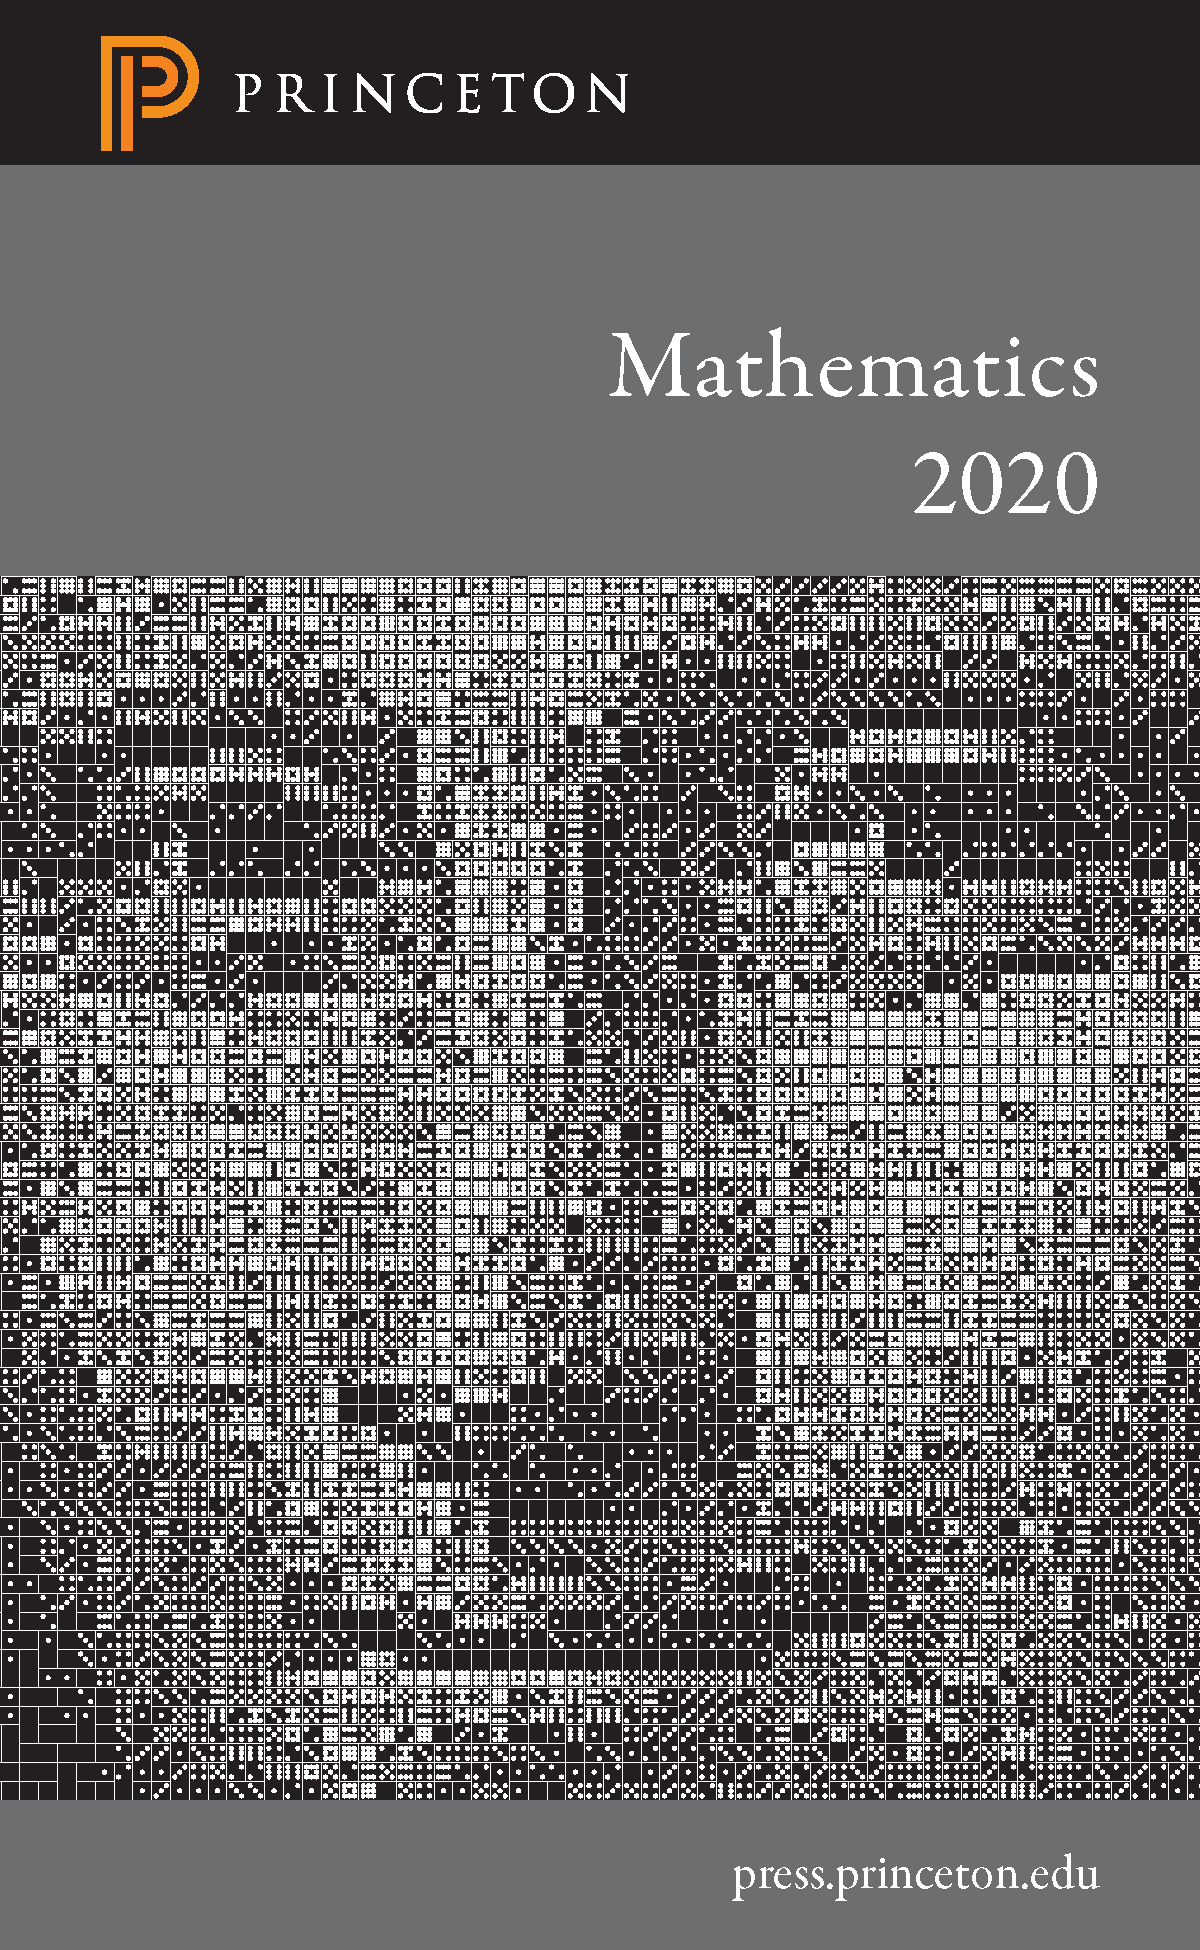 Mathematics Cover 2020